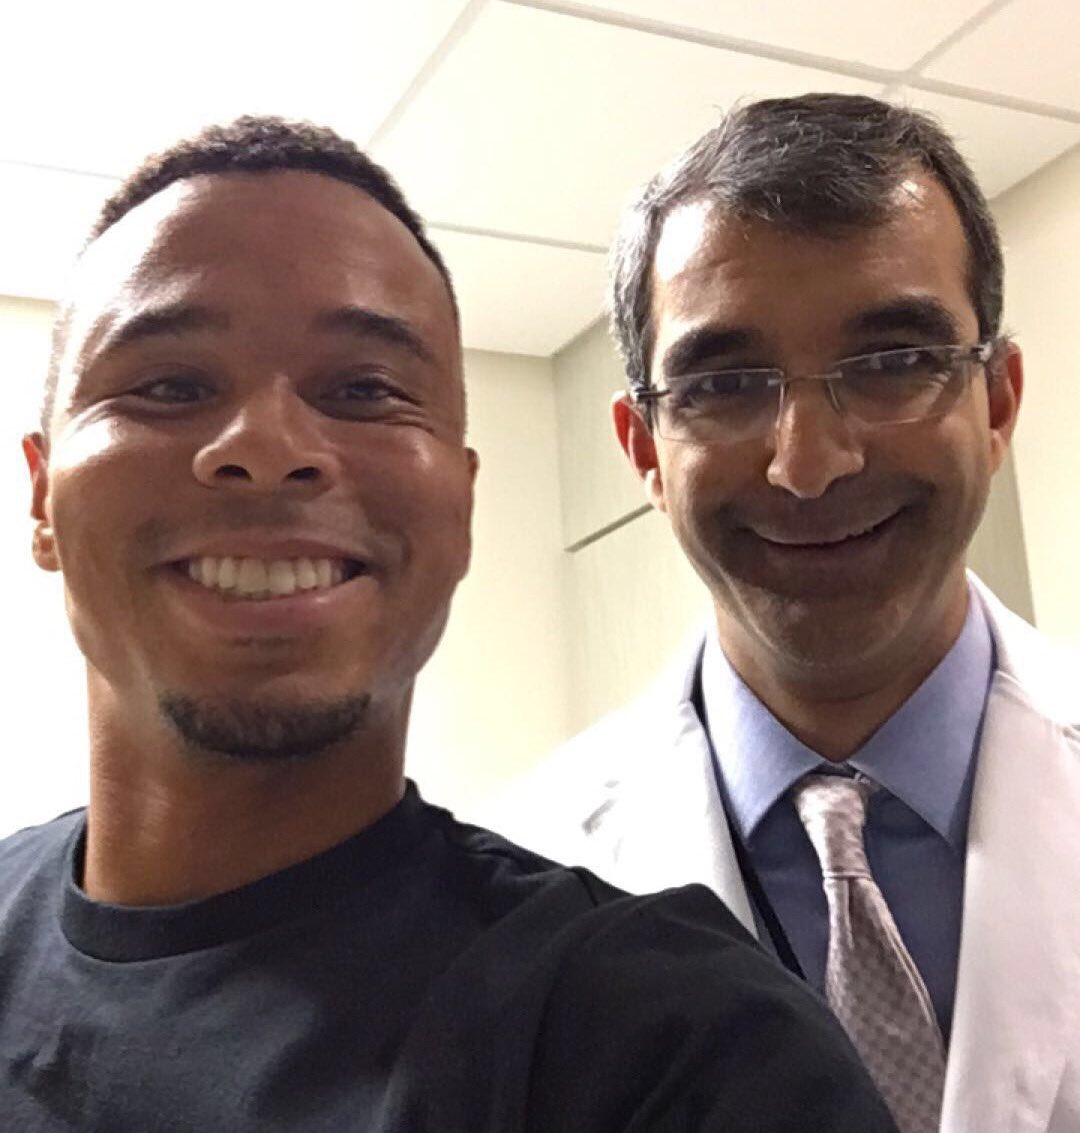 After my 4 month follow up with Dr. Raut, I'm still cancer free!!! #blessed https://t.co/V5qK4yp3fa